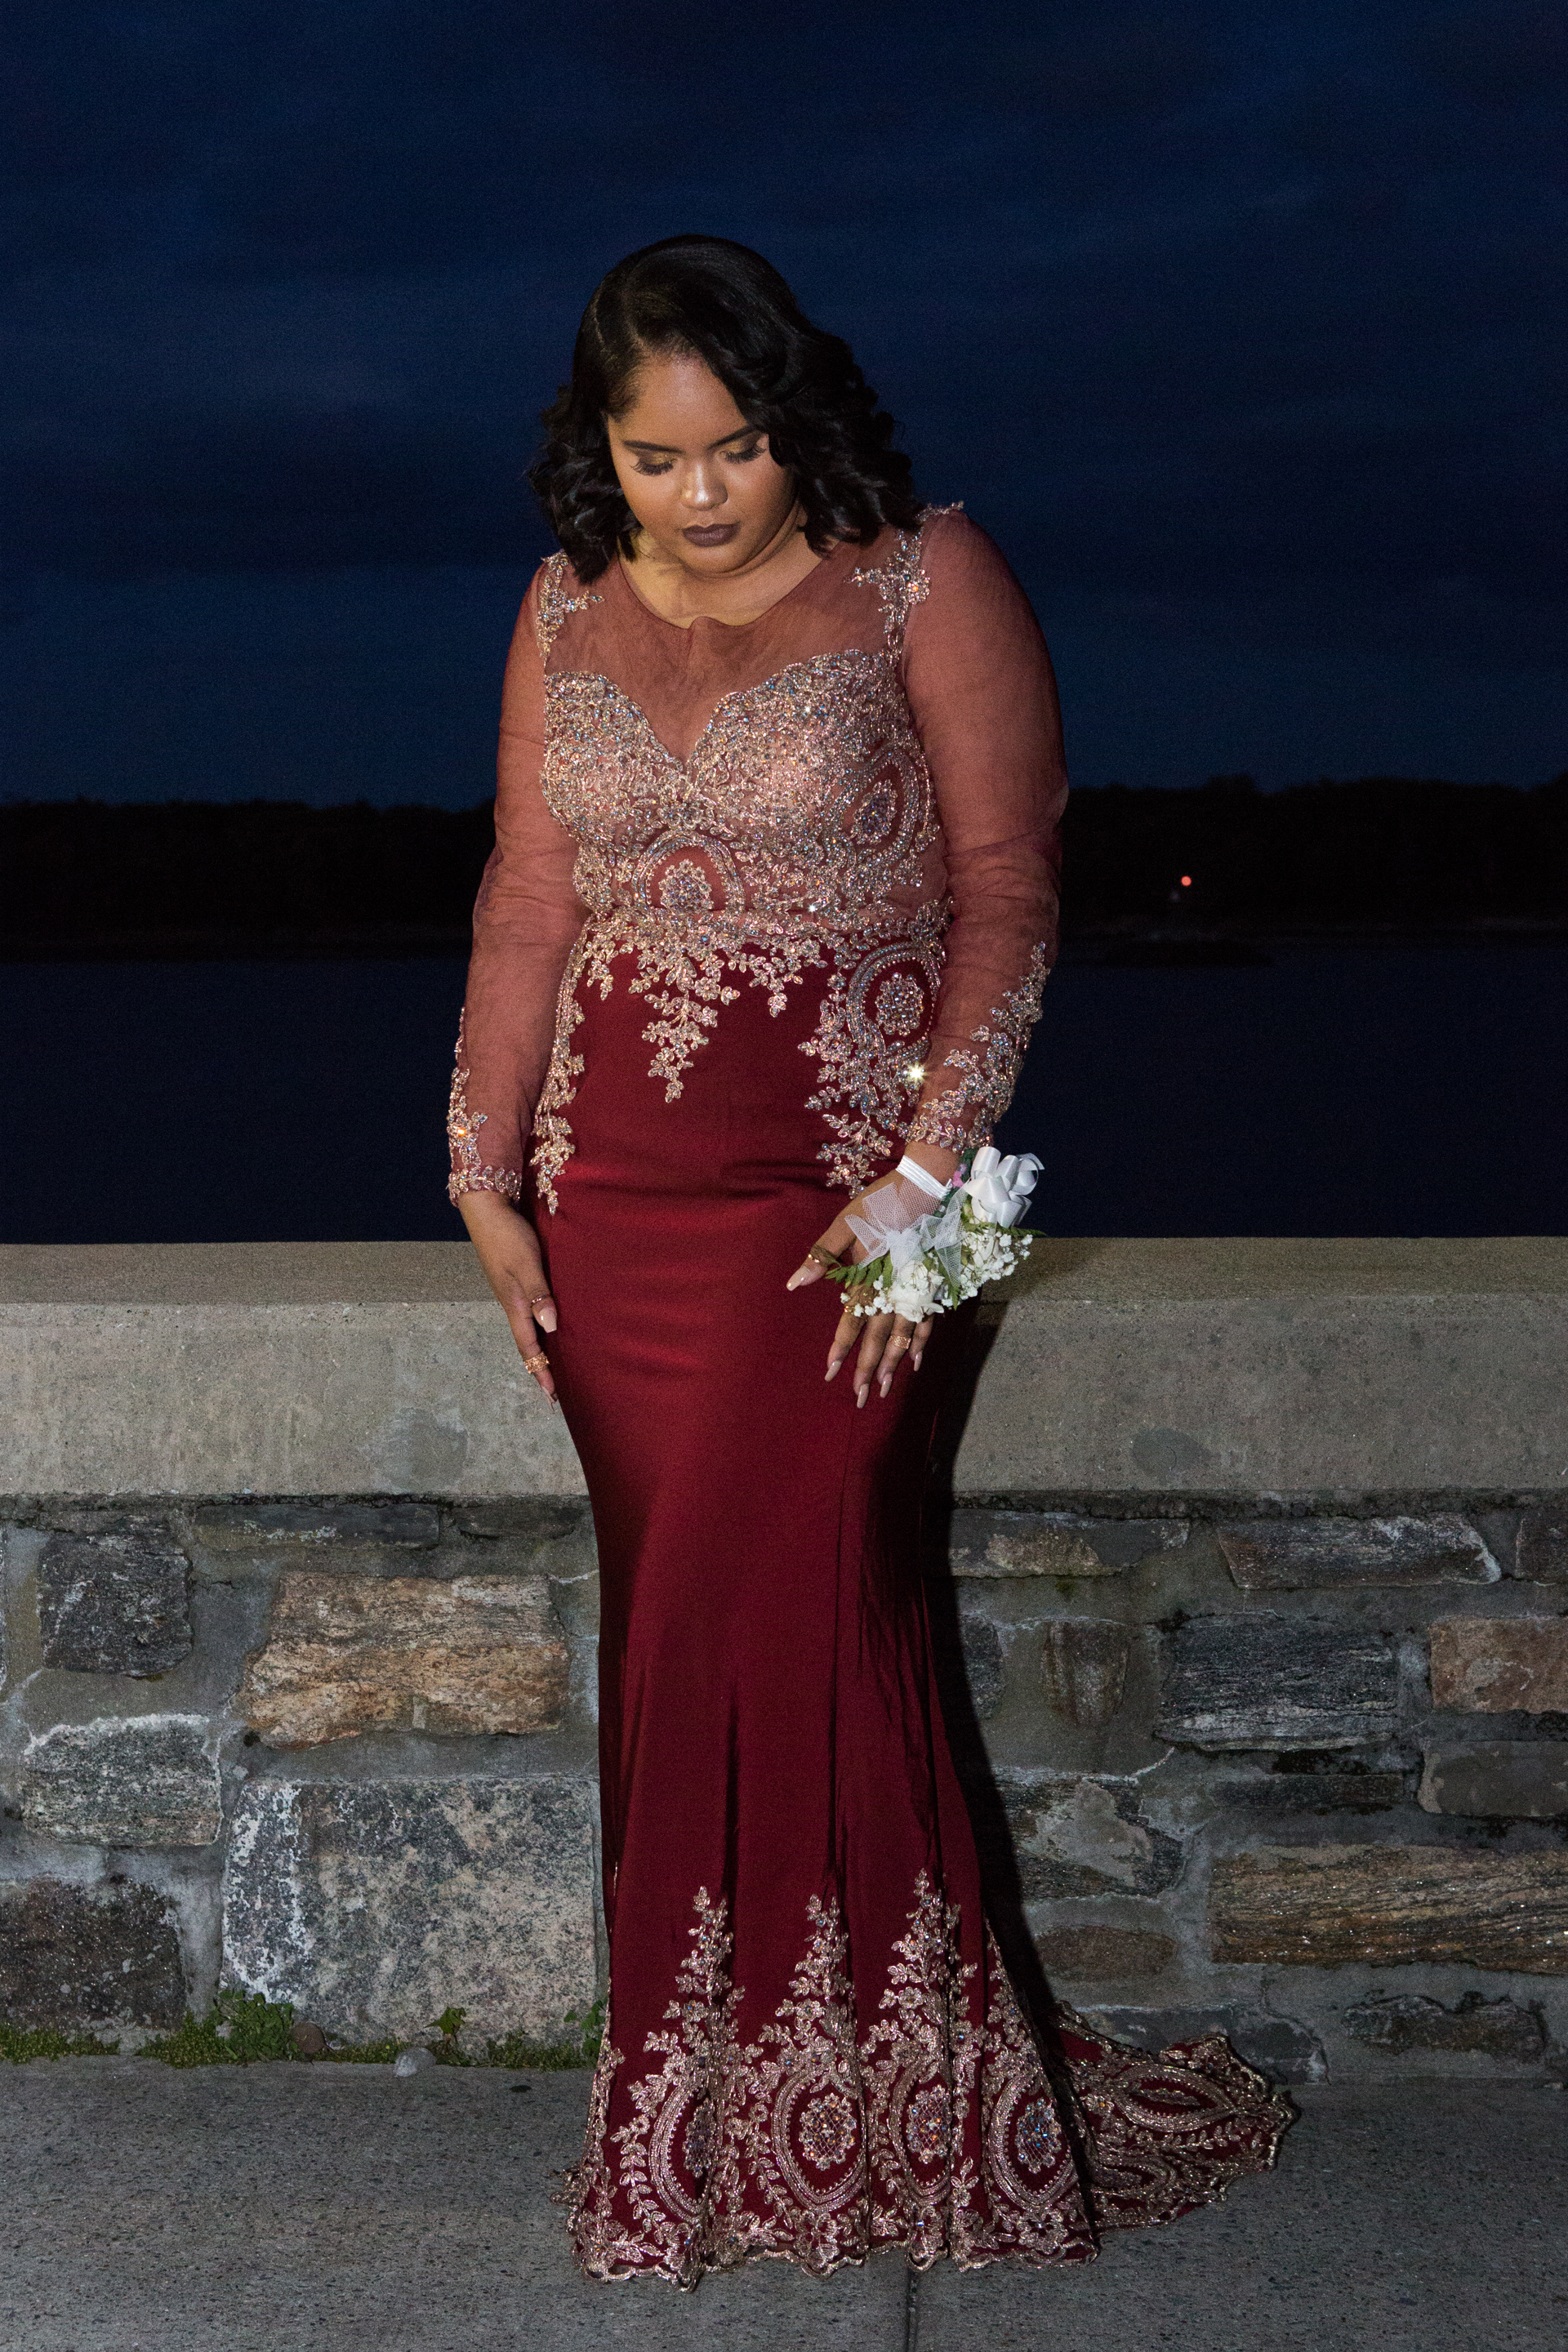 Angela, a student at DeWitt Clinton High School in the Bronx, attends the senior prom on June 8, 2016.